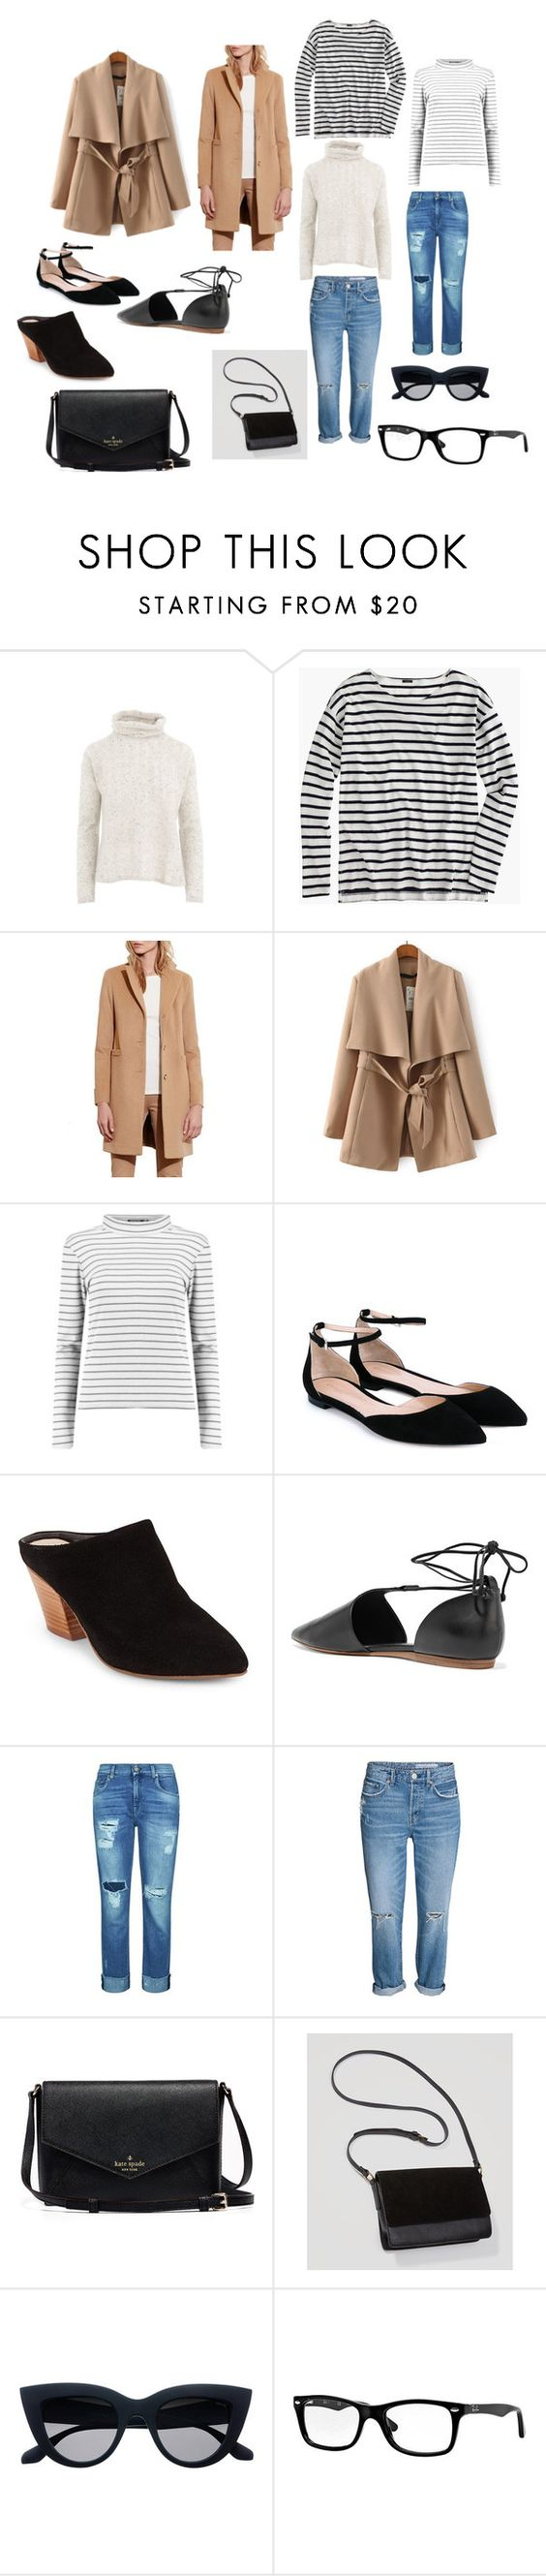 """""""sleek"""" by classykate on Polyvore featuring Quinn, J.Crew, Lauren Ralph Lauren, Gianvito Rossi, Seychelles, Vince, 7 For All Mankind, LOFT and Ray-Ban"""